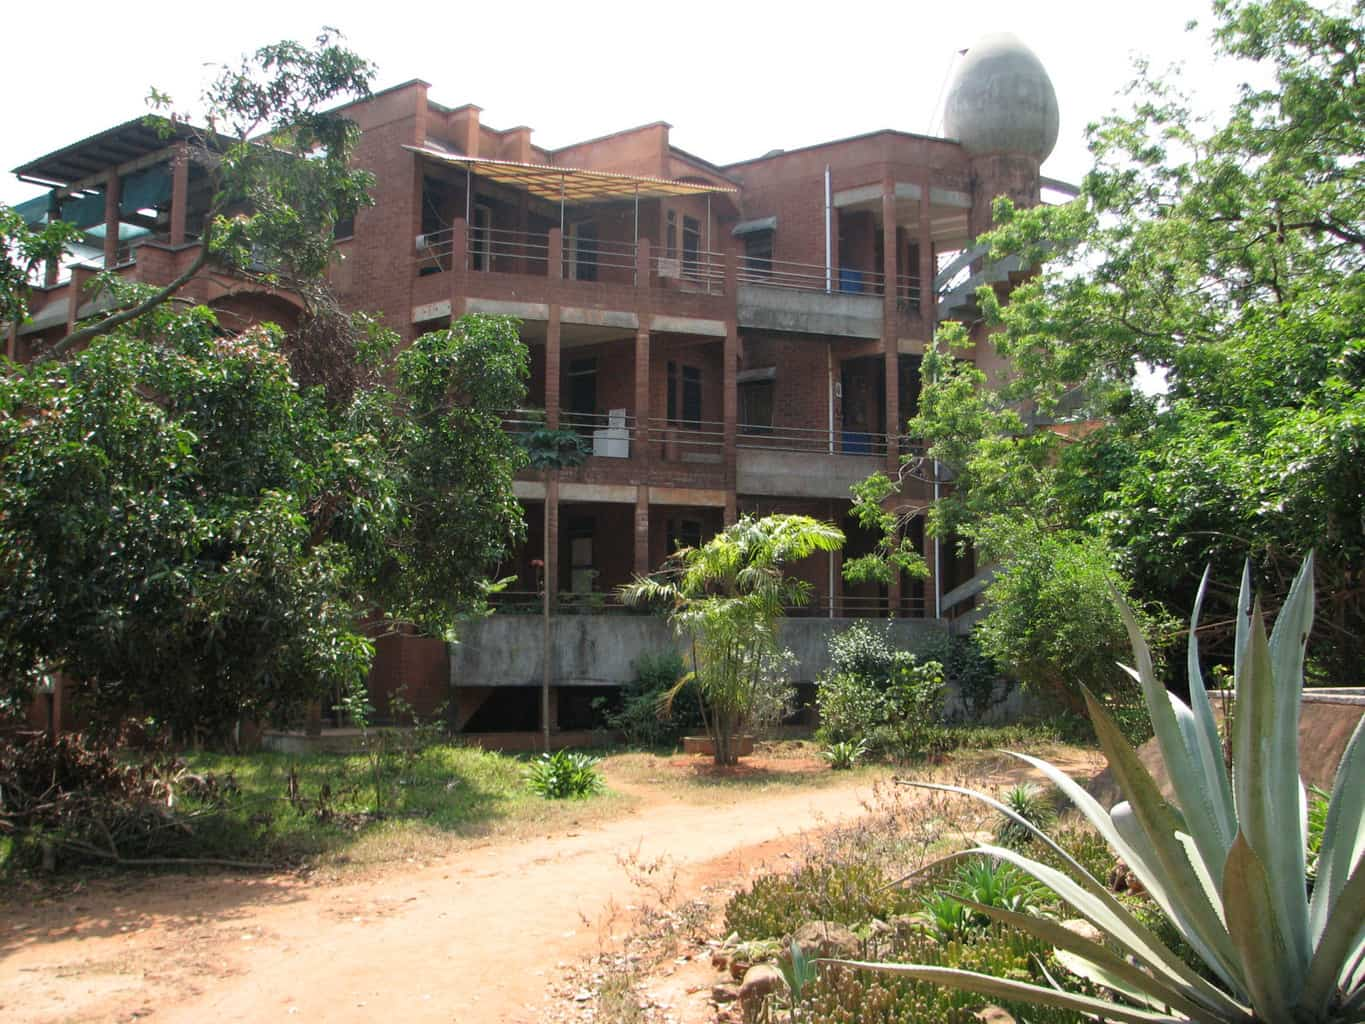 Stabilized Compressed Earth Blocks : Auroville a universal city in the making south india